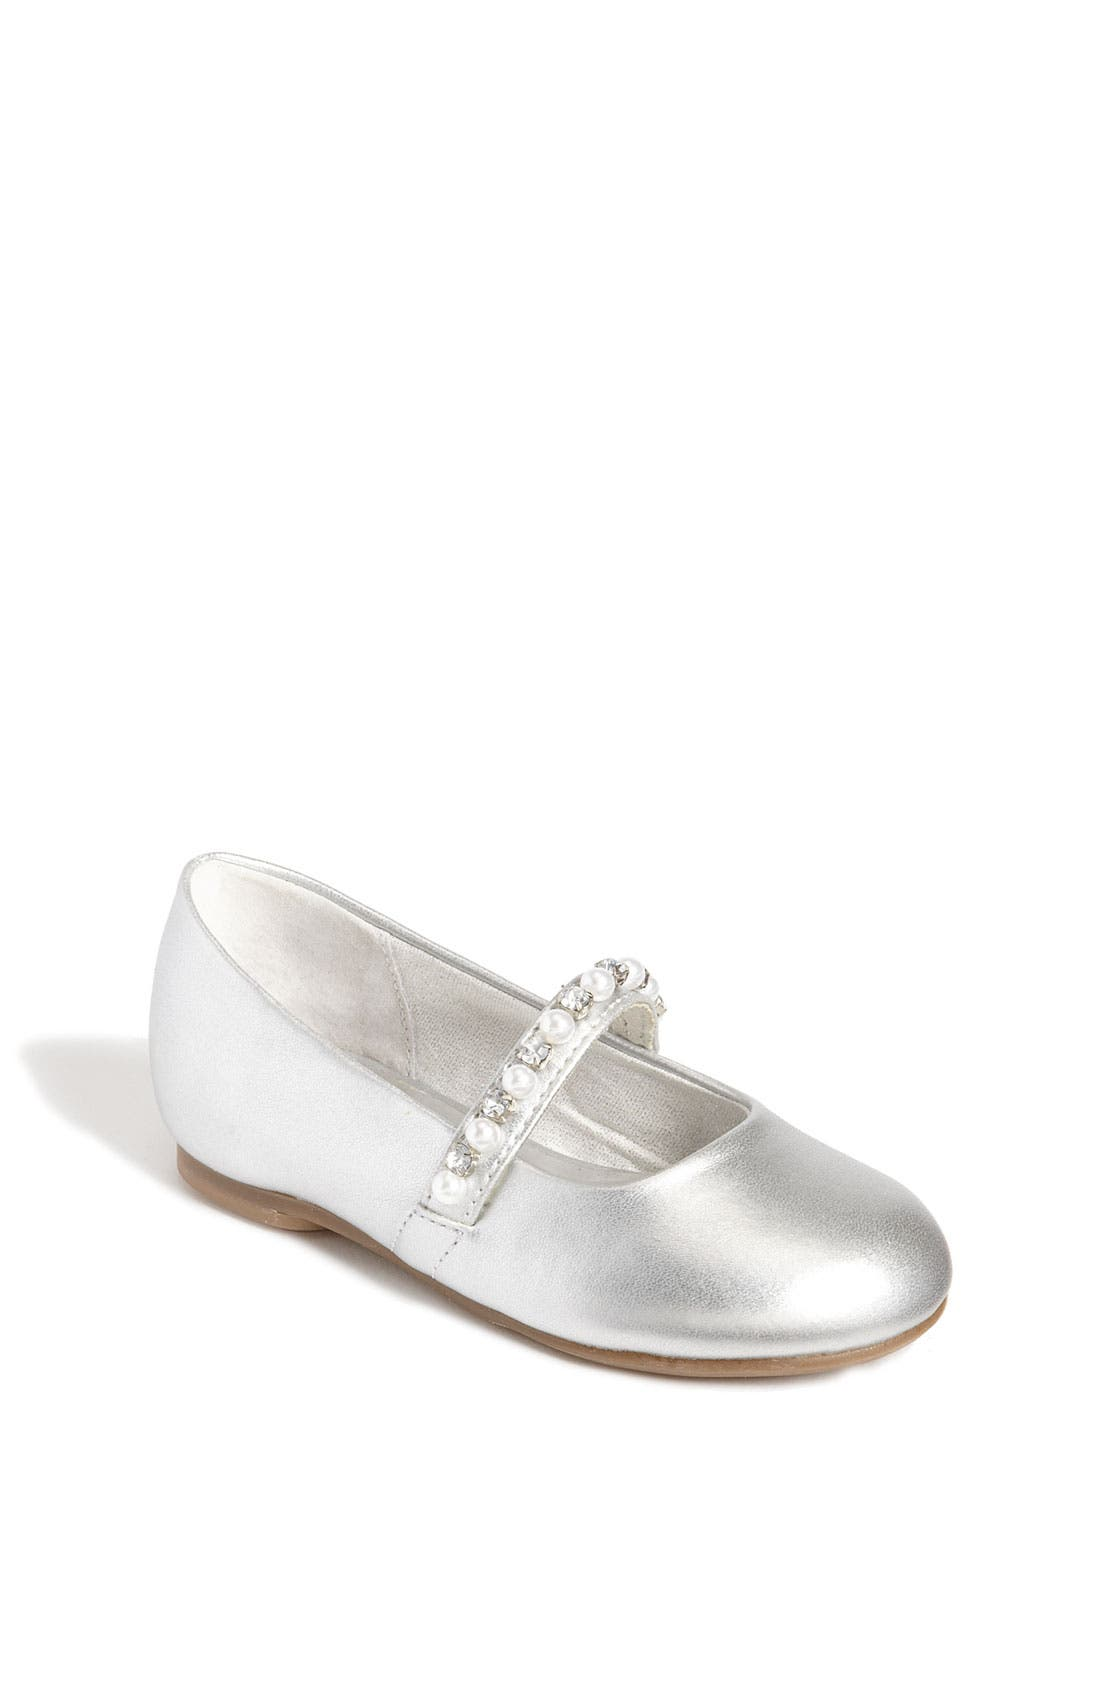 Girls Flats Shoes Nordstrom